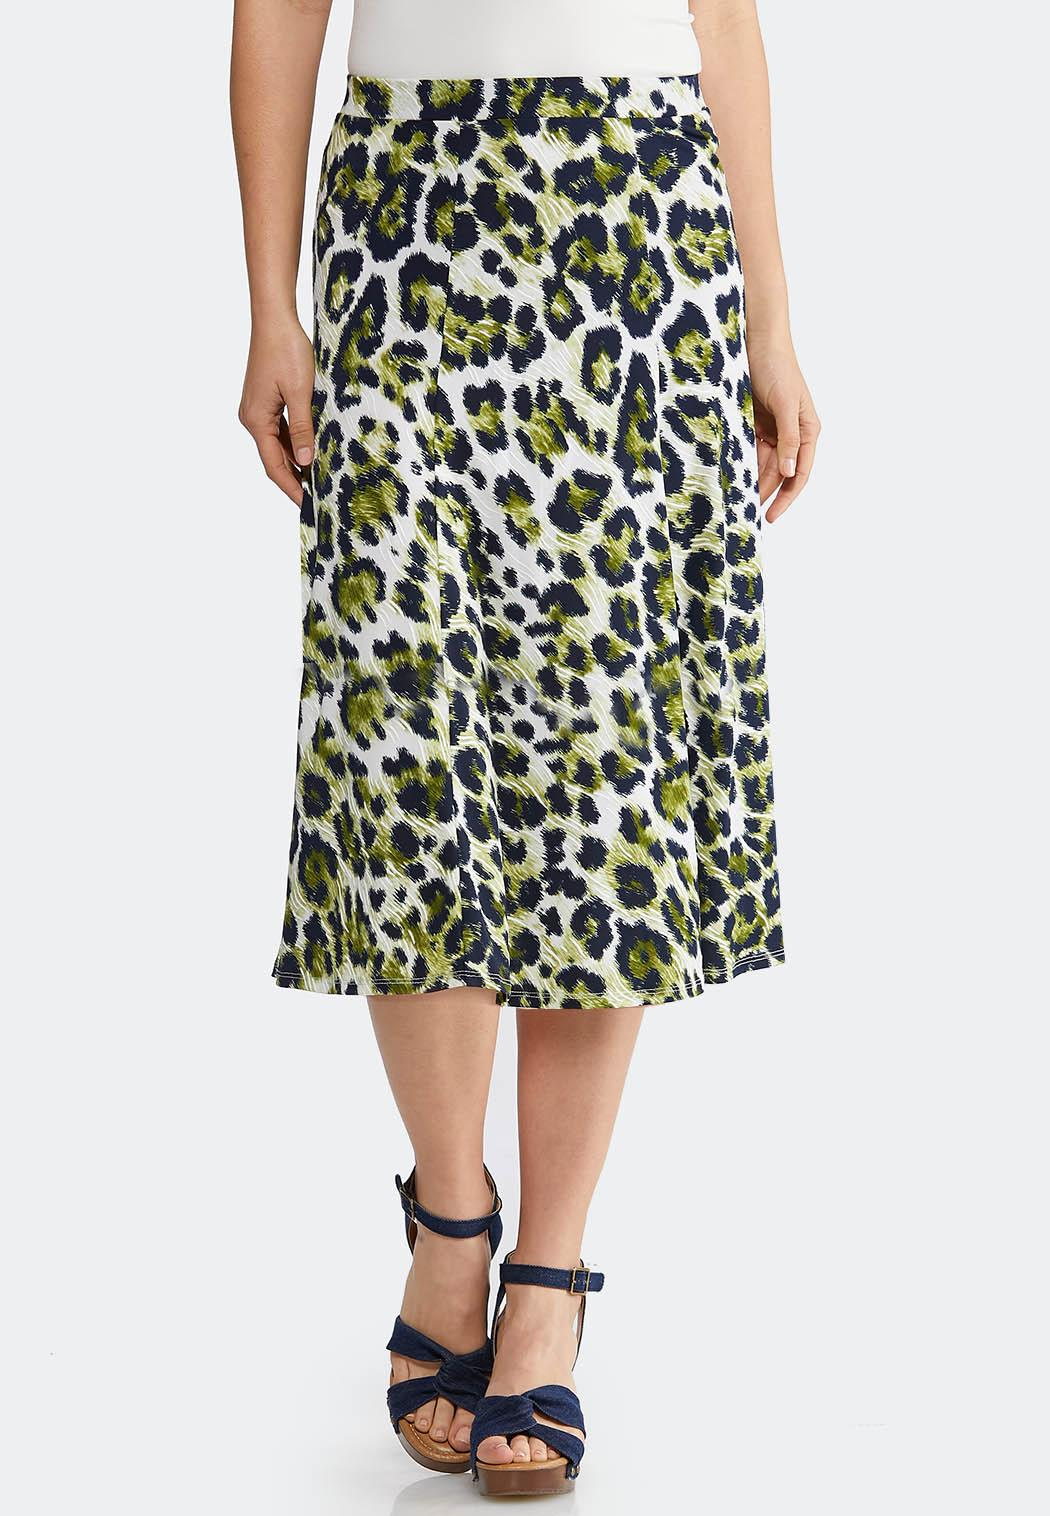 Plus Size Animal Print Midi Skirt Skirts Cato Fashions